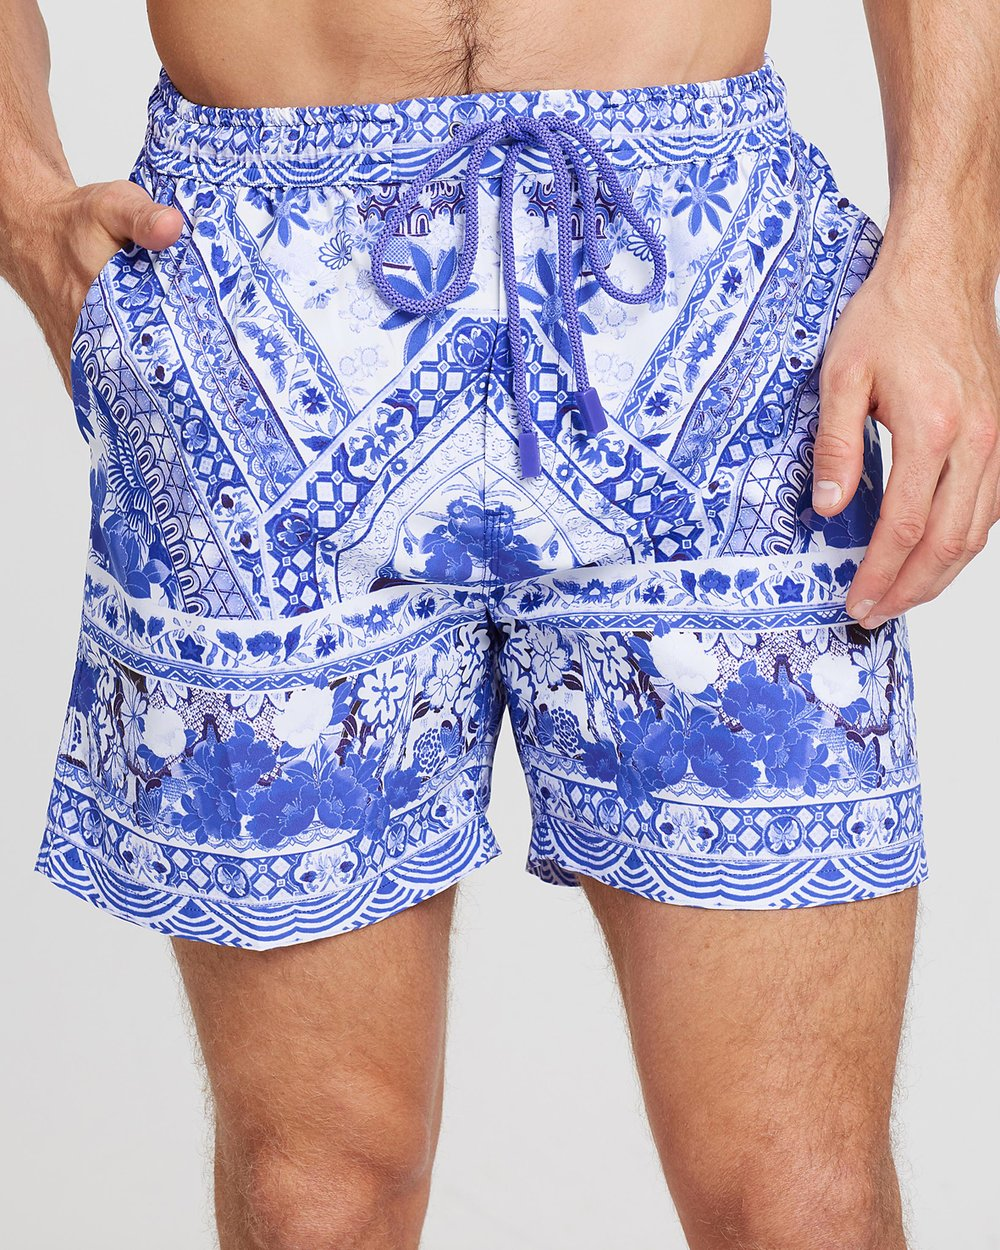 270eea0a38 The Fan Sea Boardshorts by Camilla Online | THE ICONIC | Australia